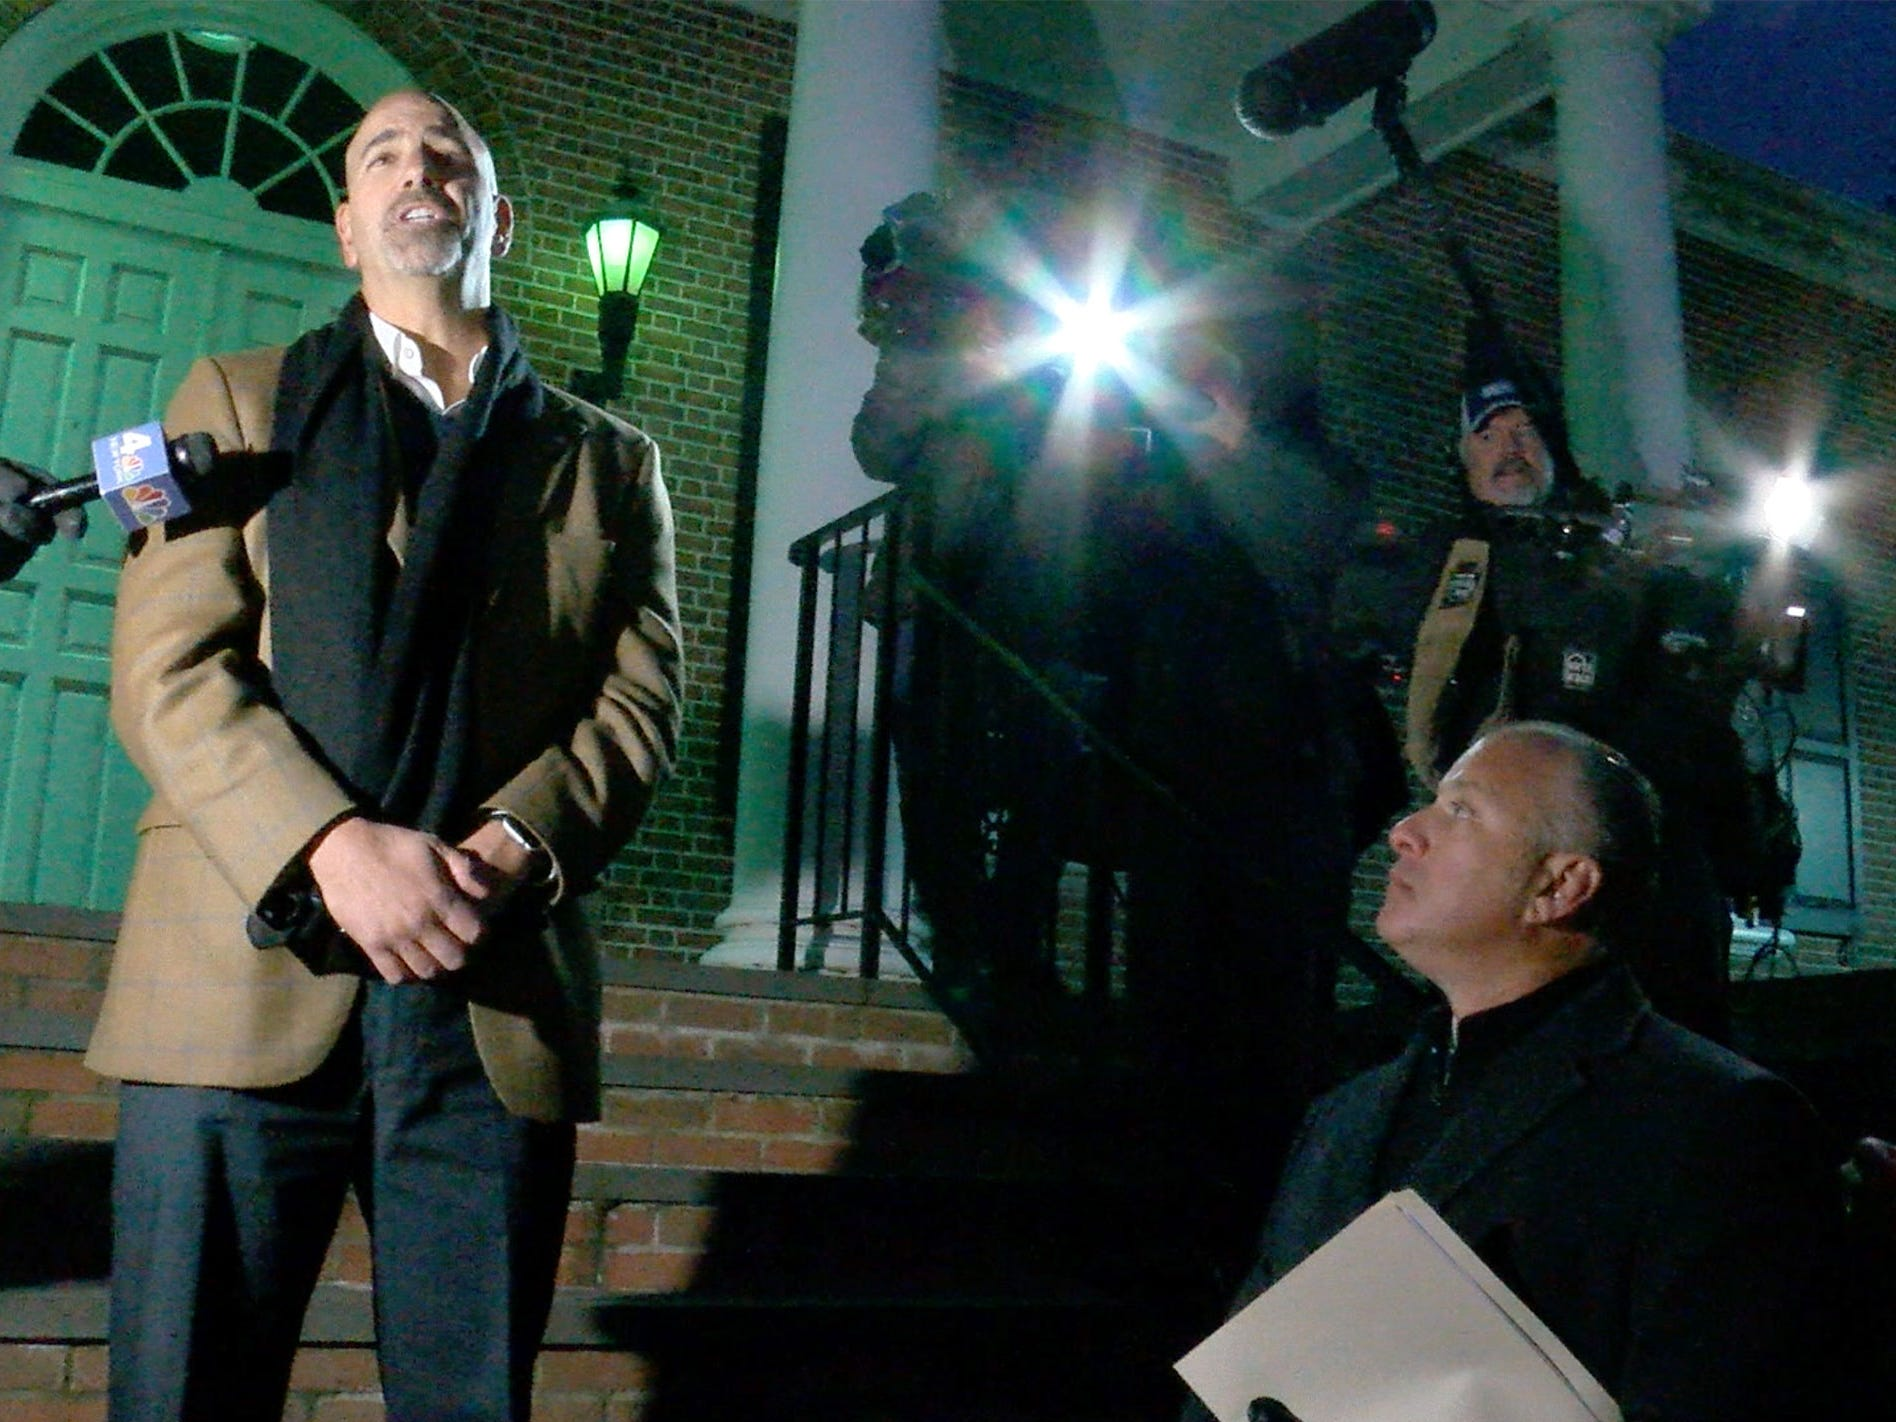 Colts Neck Mayor J.P. Bartolomeo speaks from the steps of Town Hall Wednesday night, November 21, 2018, for a vigil to remember the Caneiro family killed in a house fire the previous day.